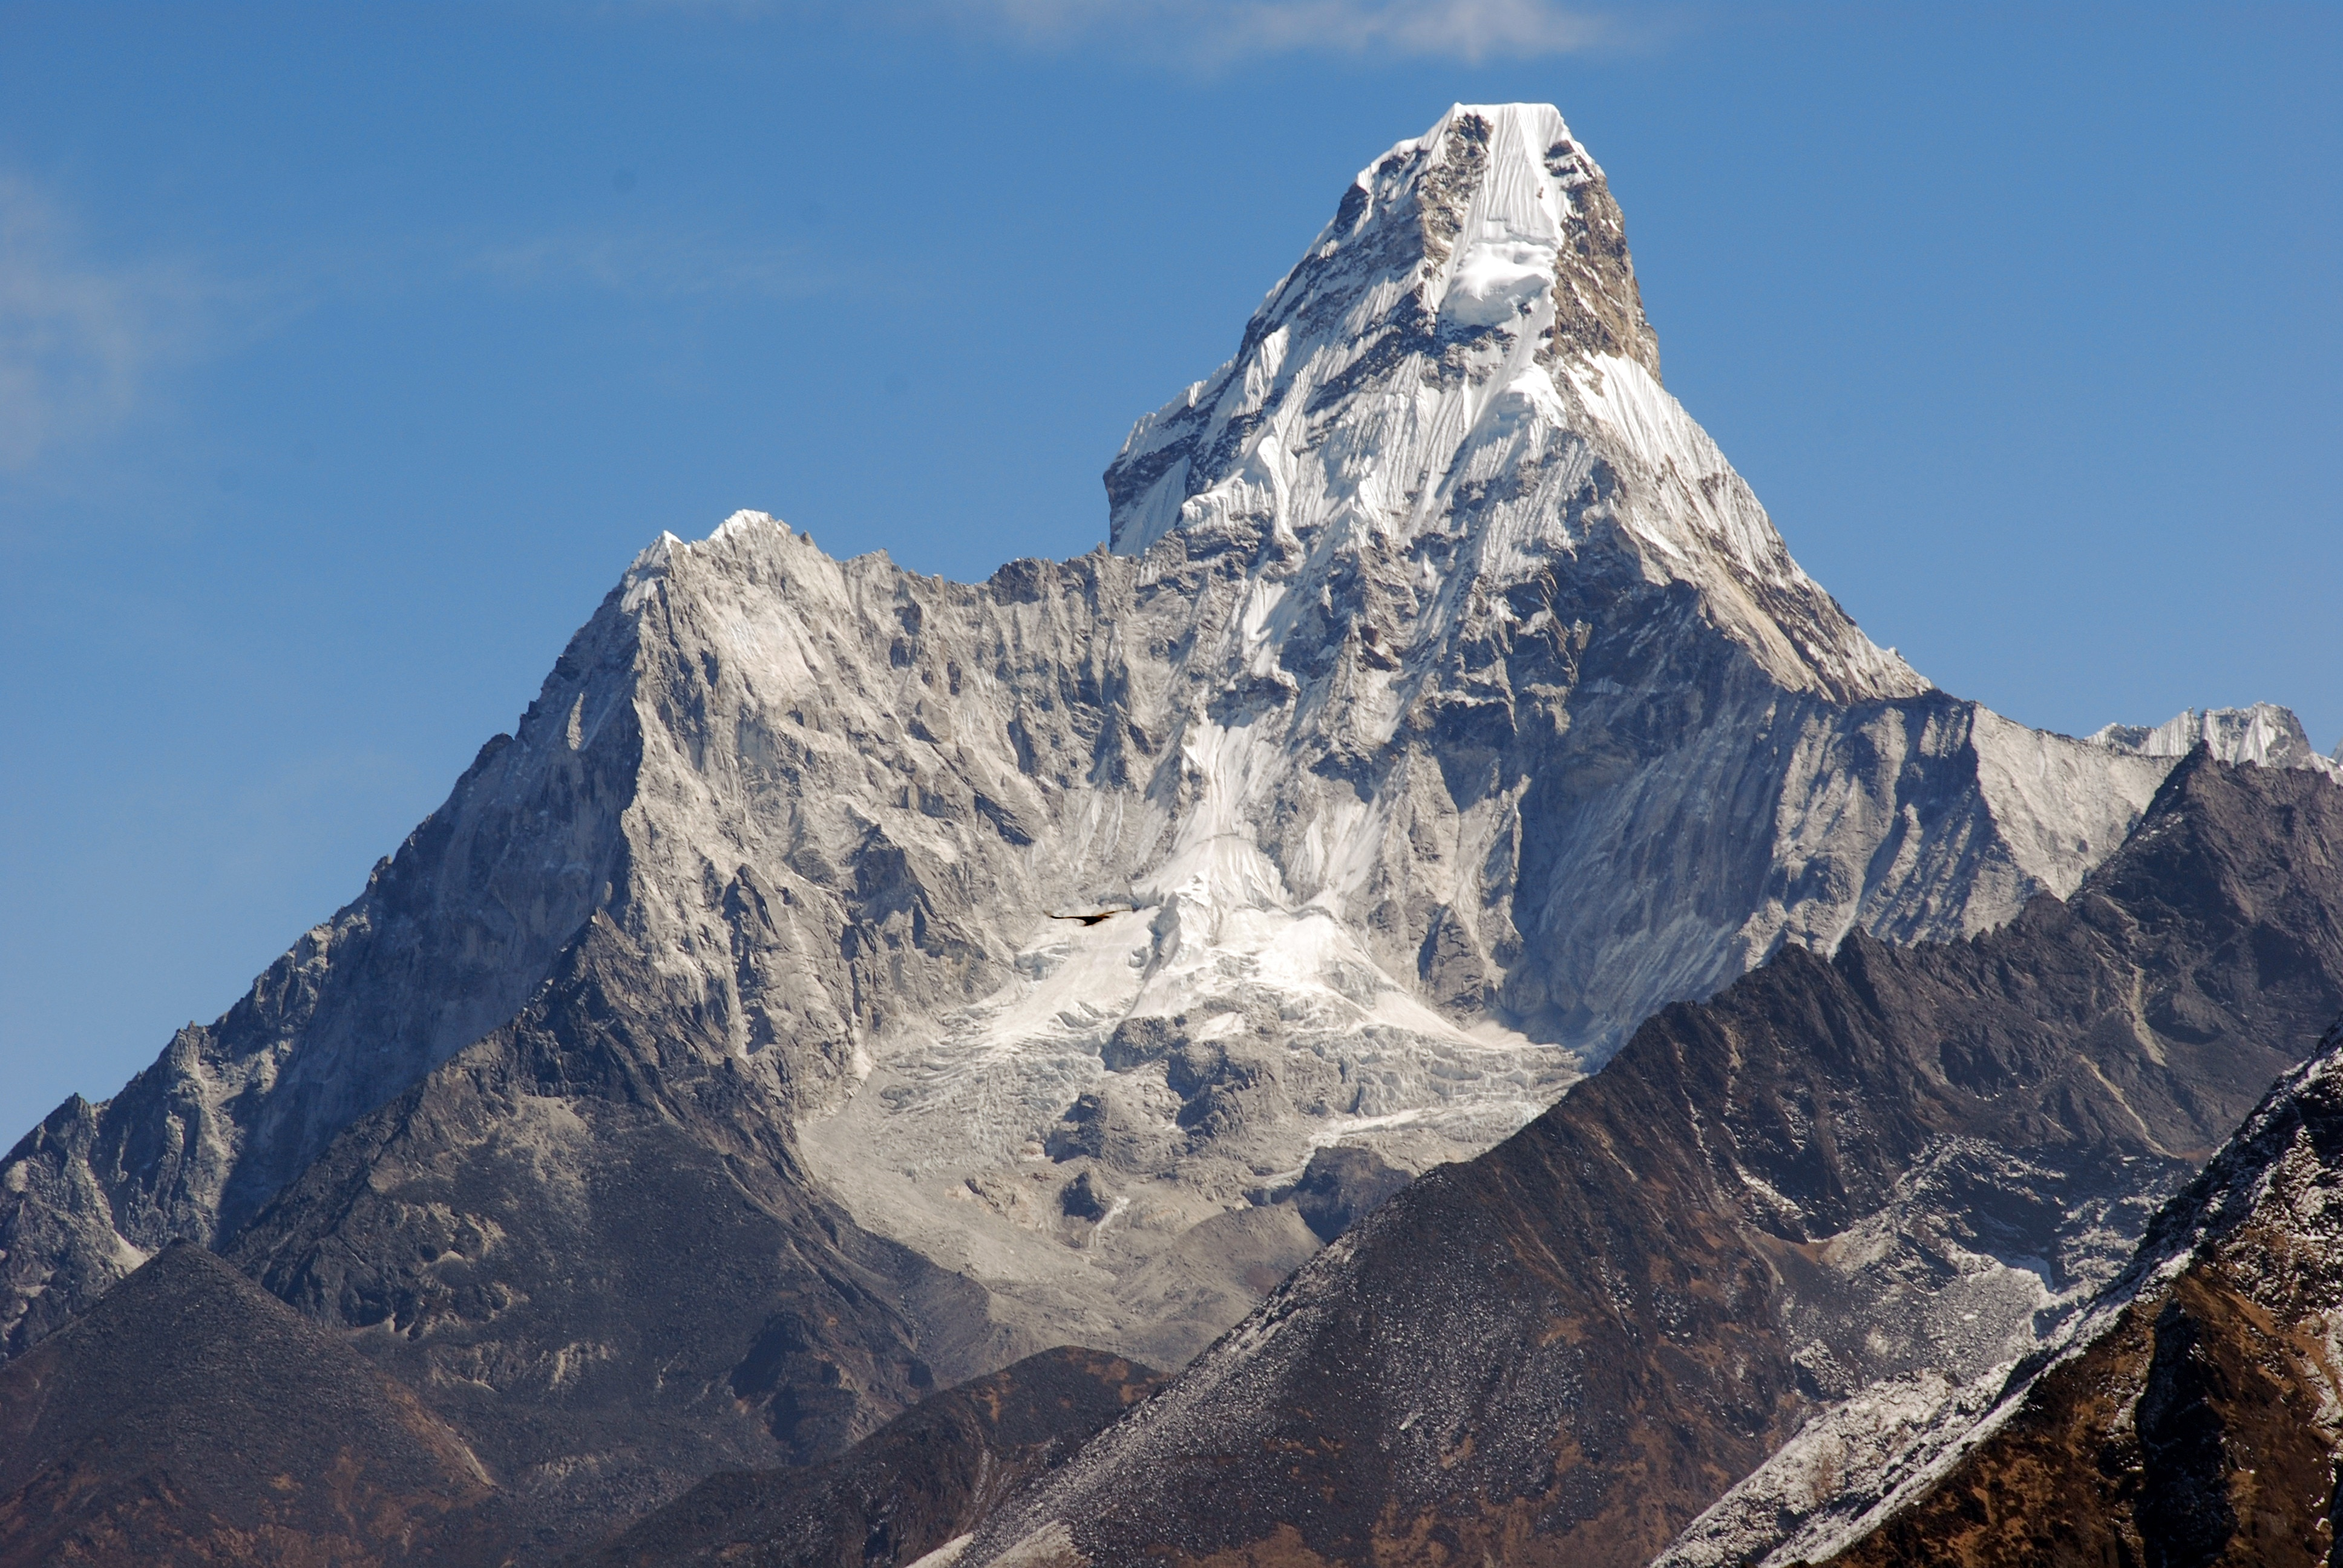 Photo of Record sull'Ama Dablam: quando si dimentica la storia